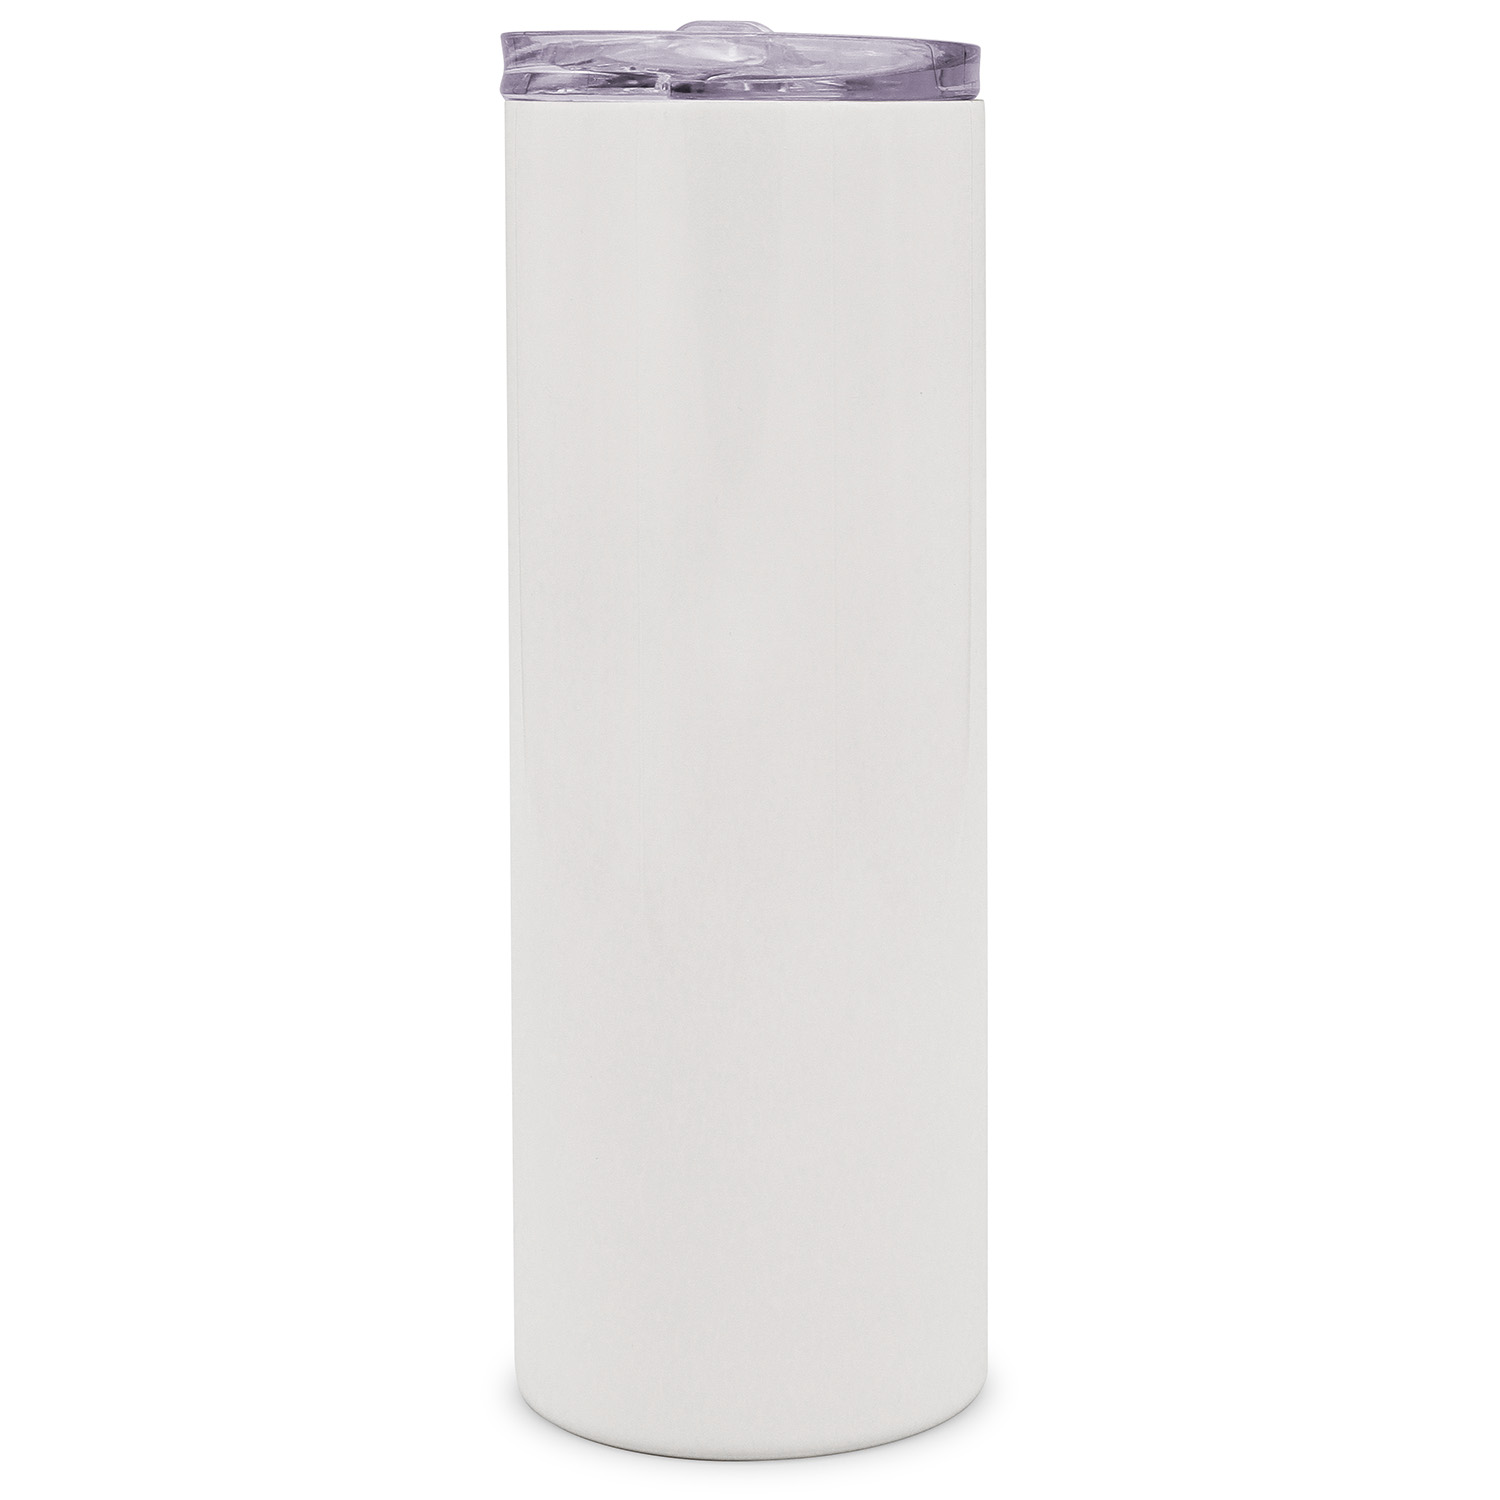 25pcs 20oz Taperless Sublimation Blank Skinny Tumbler Stainless Steel Insulated Water Bottle Double Wall Vacuum Travel Cup With Sealed Lid and Straw (White)